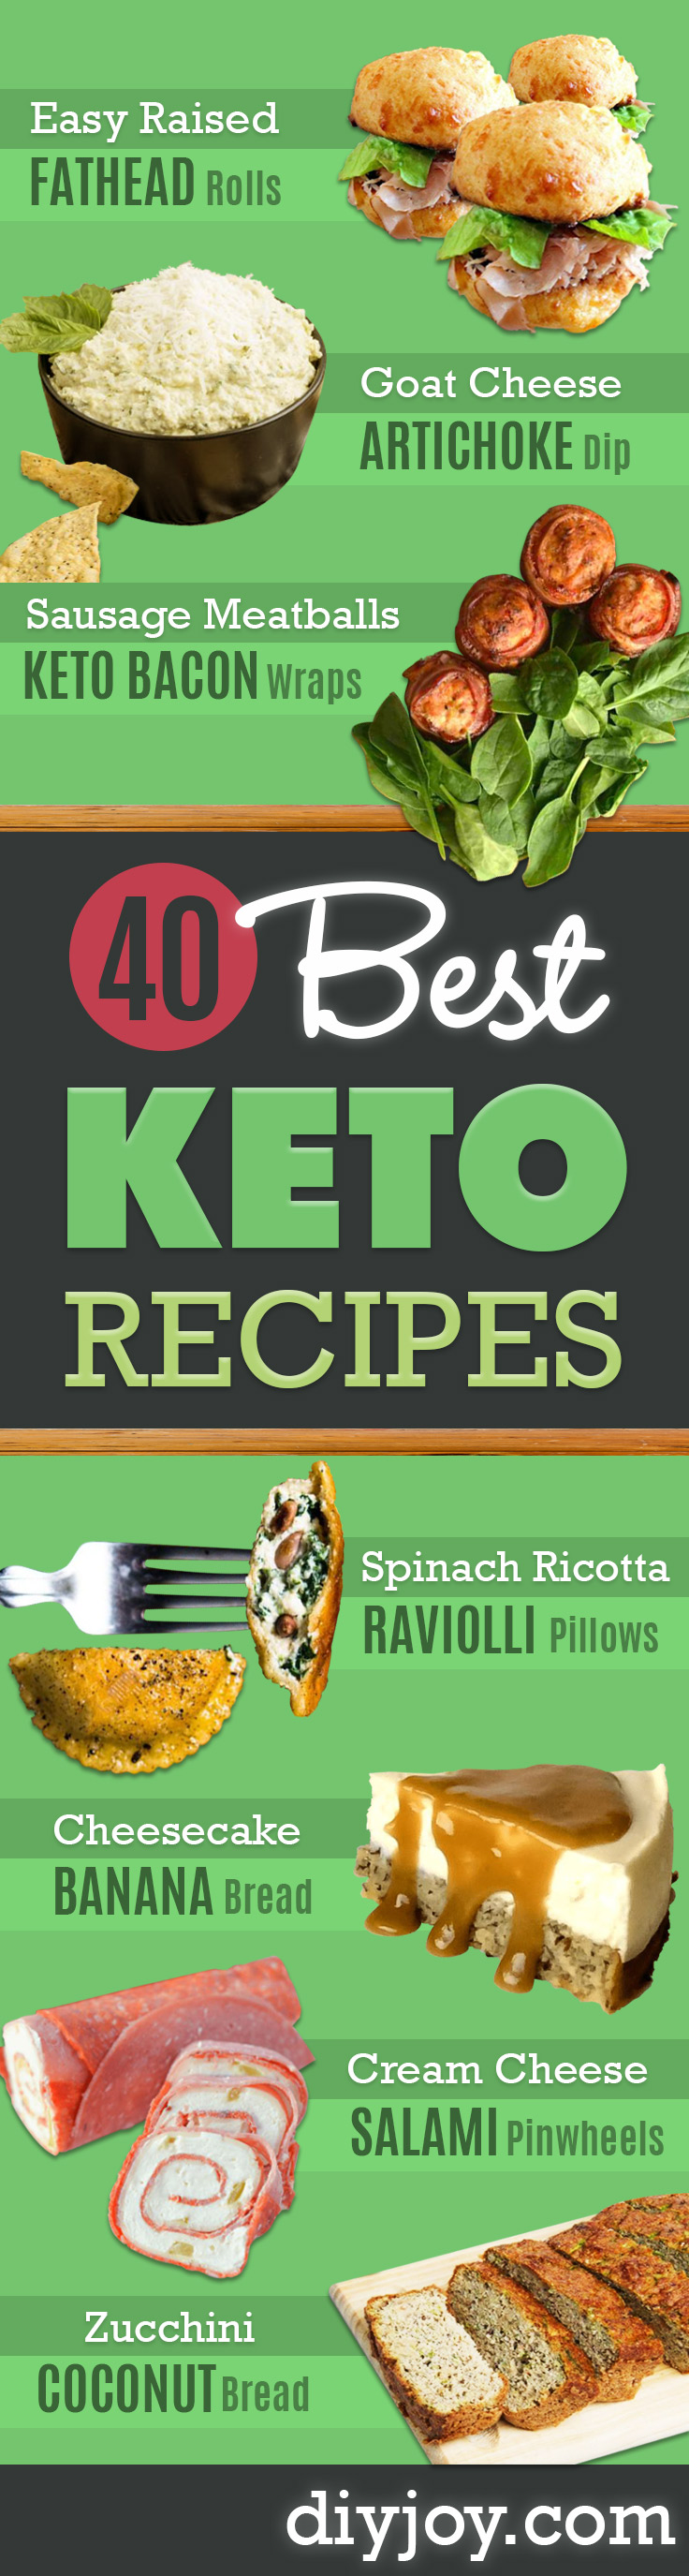 Best Keto Recipes - Easy Ketogenic Recipe Ideas for Breakfast, Lunch, Dinner, Snack and Dessert - Quick Crockpot Meals, Fat Bombs, Gluten Free and Low Carb Foods To Make For The Keto Diet - Shakes, Protein and Cheese Dishes With No or Low Carbohydrates - Sugarfree Keto Cooking Idea and Techniques Keep Ketones Low To Burn Fat http://diyjoy.com/best-keto-recipes